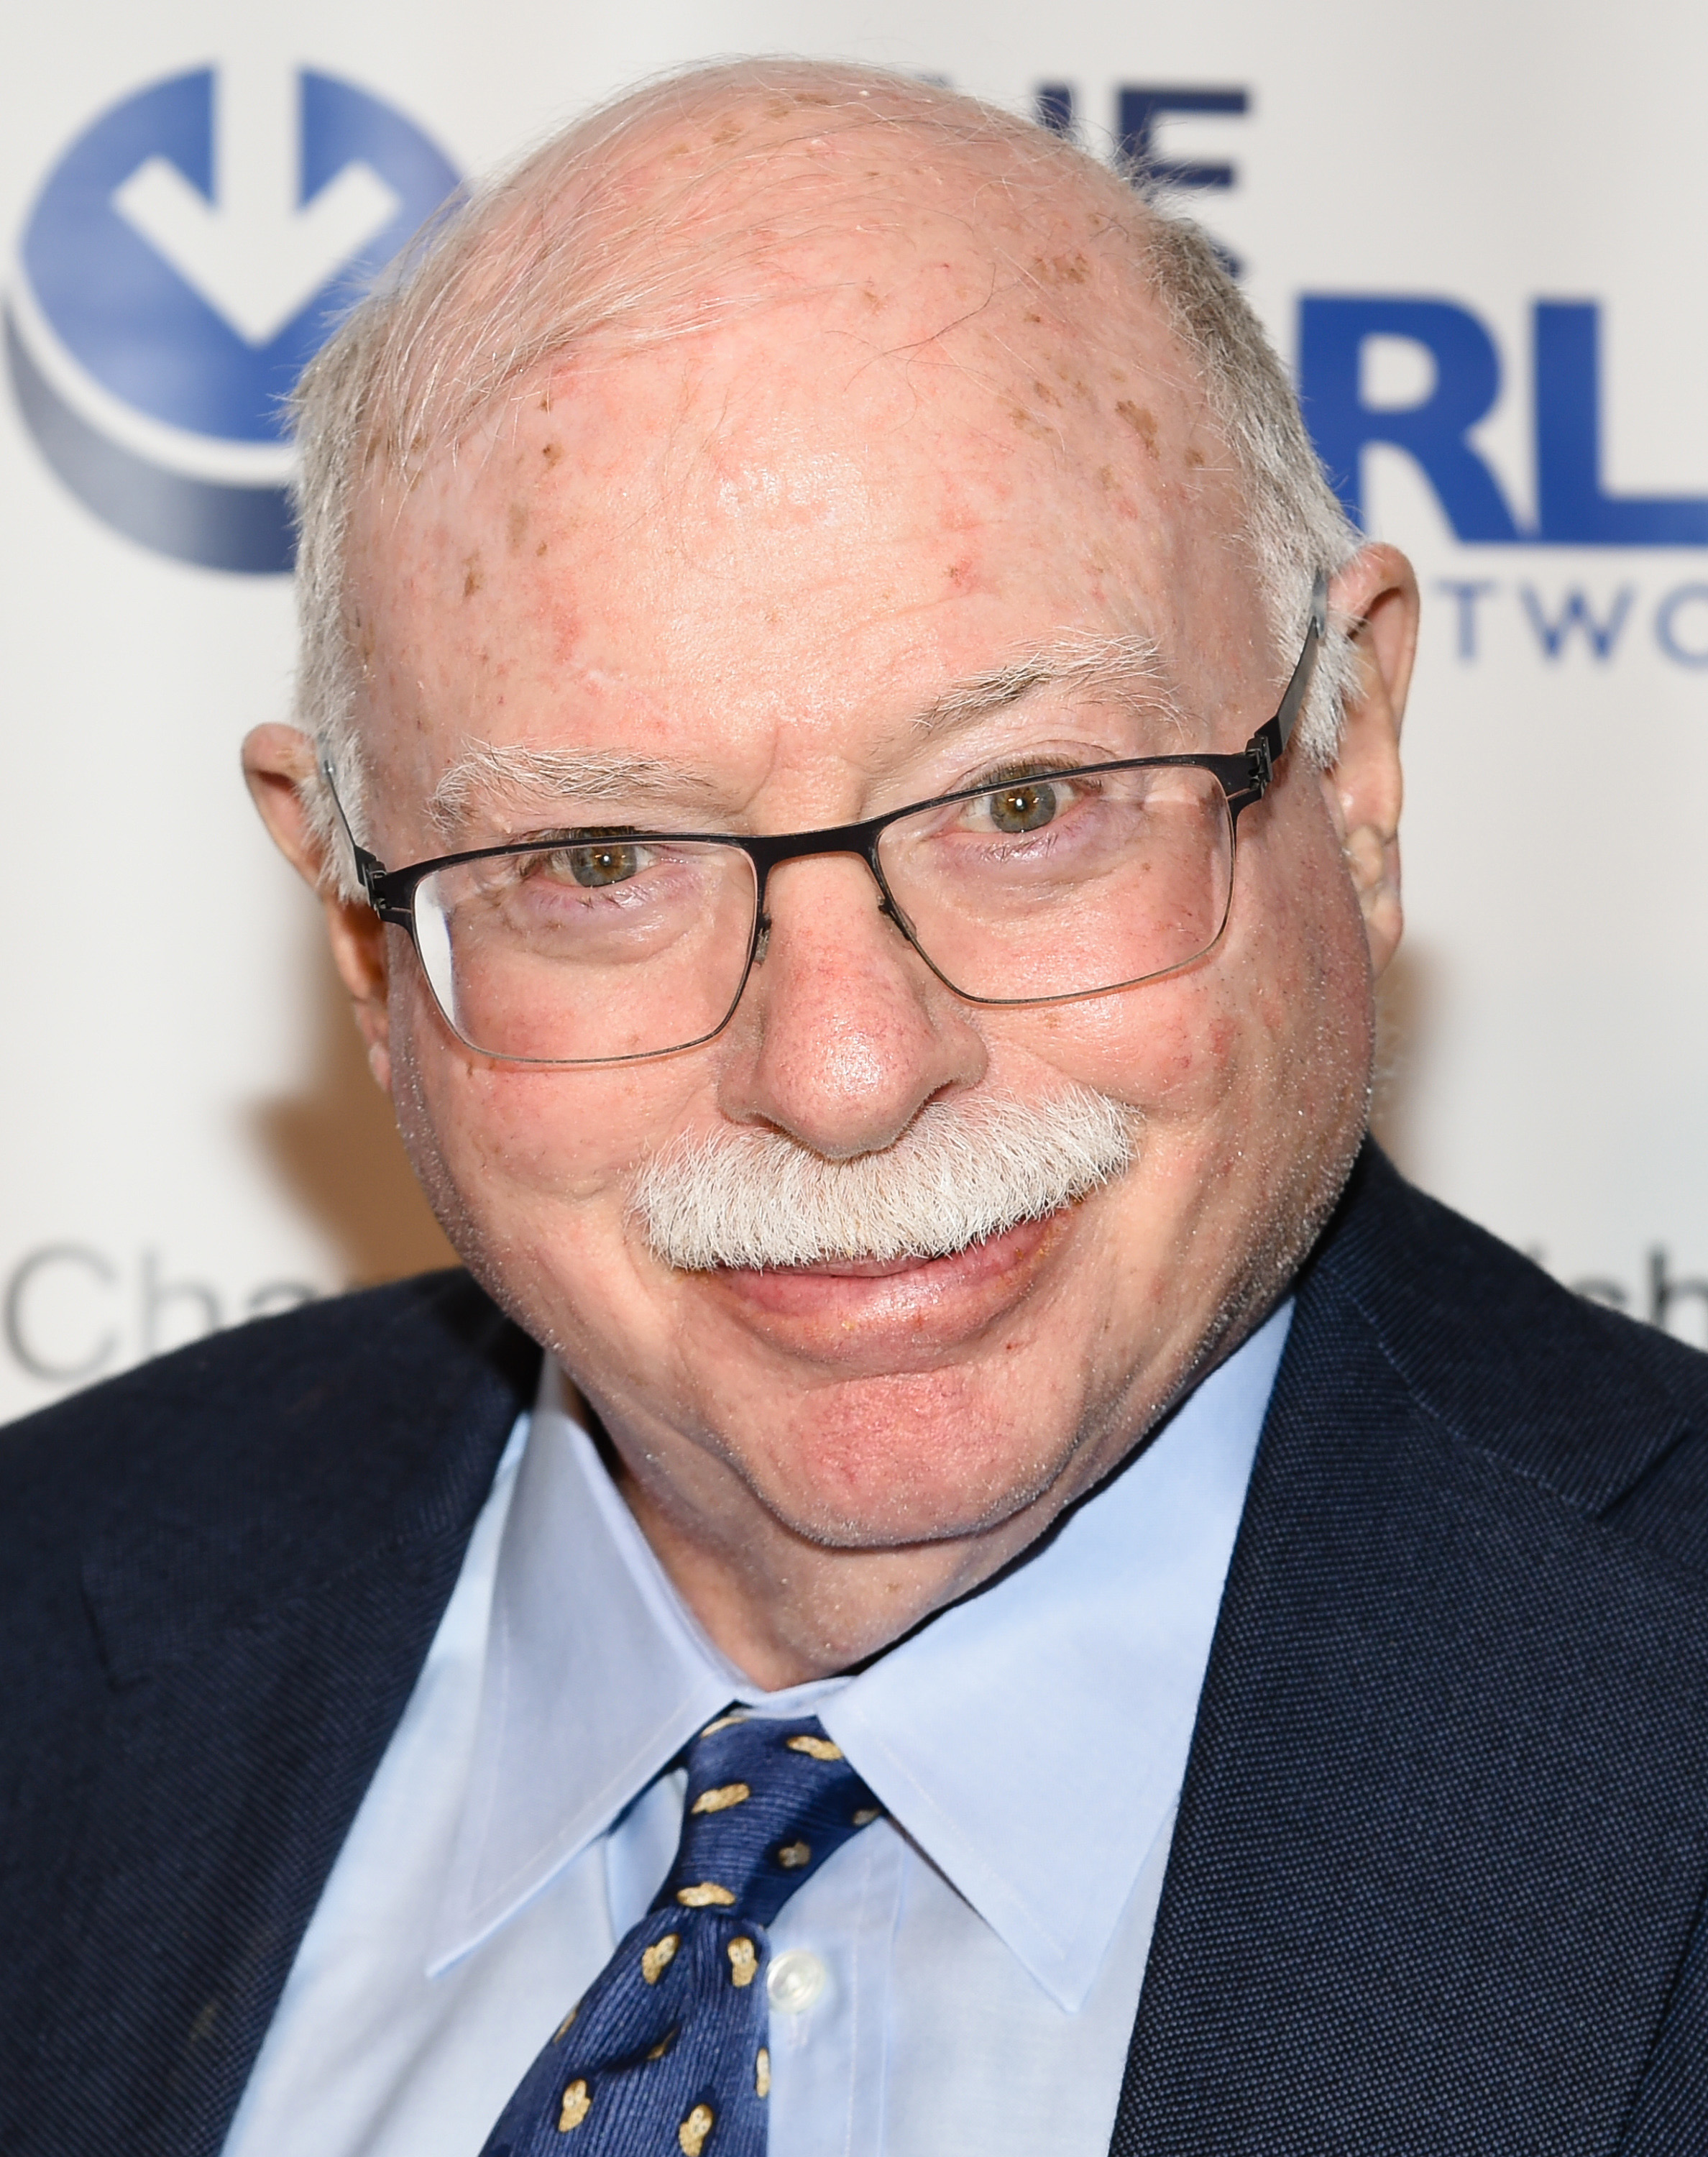 Report: Collector and Philanthropist Michael Steinhardt Accused of Sexual Harassment